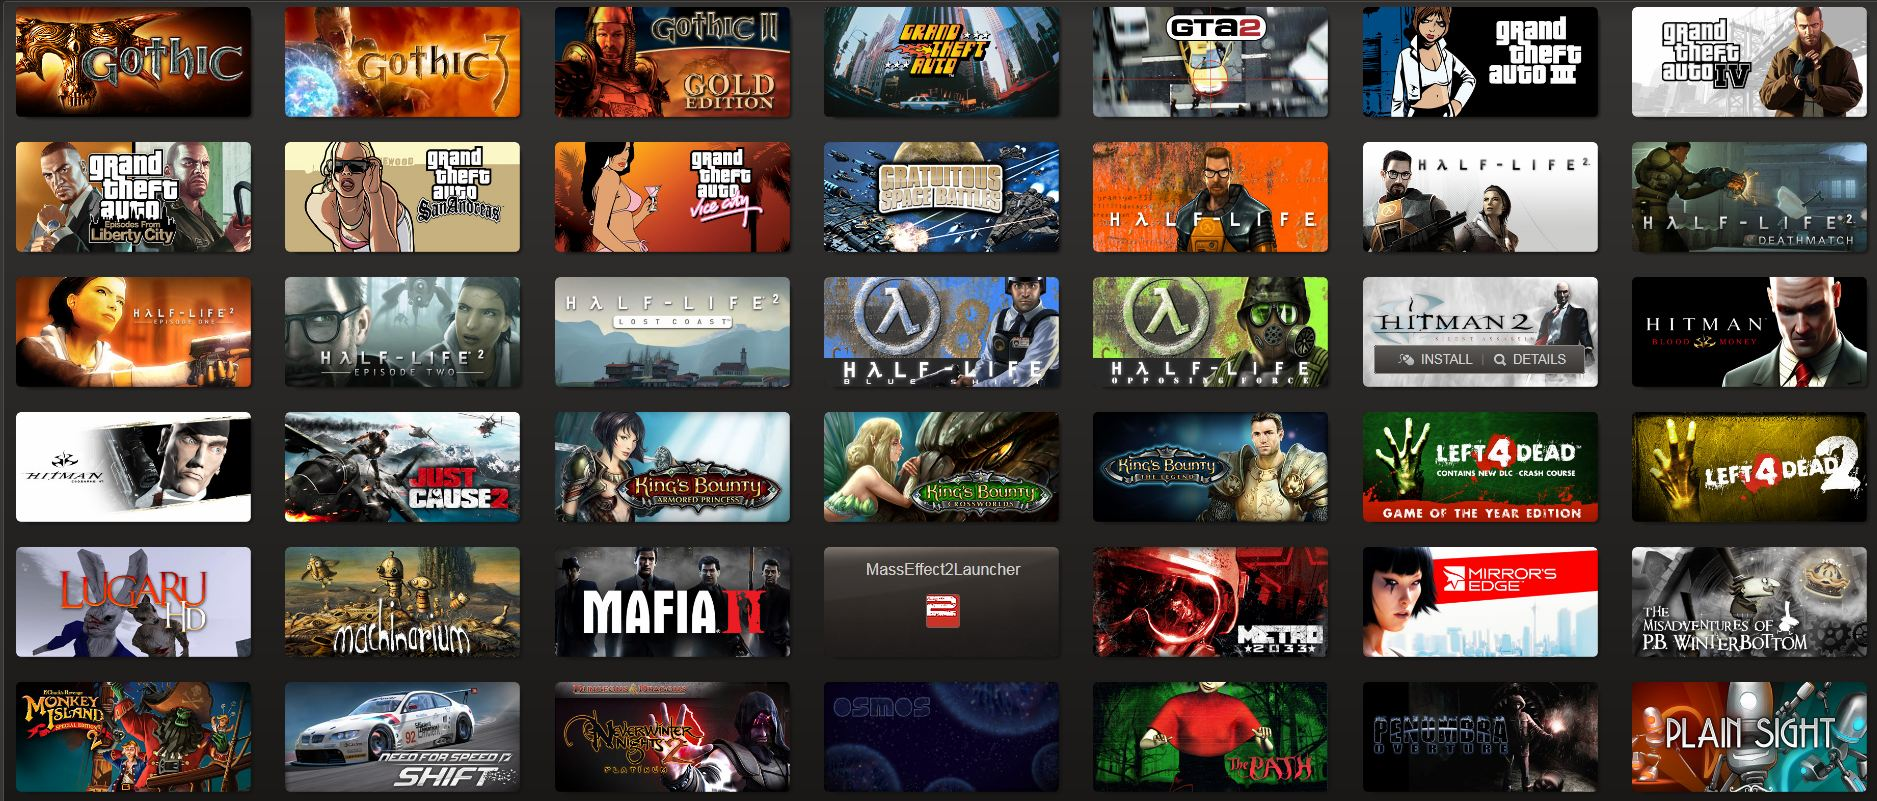 Steam Games For Ps4 : Steam boasts million plus users and games